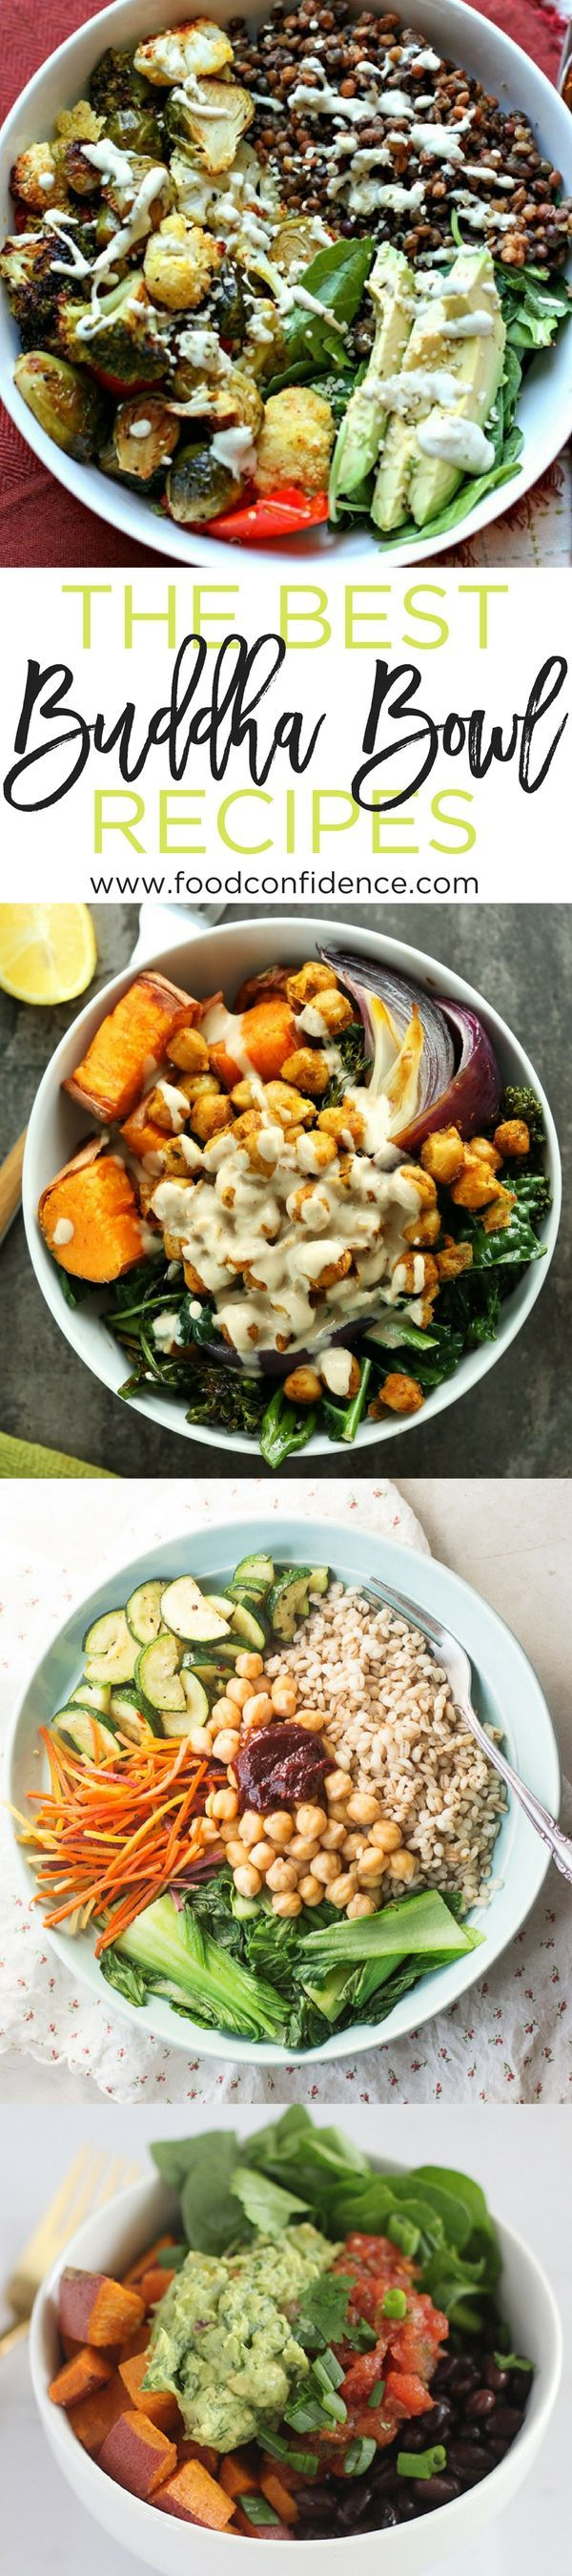 Buddha Bowls are the perfect healthy lunch or dinner - they're packed with protein, veggies, whole grains, and tons of flavor, plus they're super flexible and can be made with whatever you have on hand. Need some tips for getting started? Check out this list of the best Buddha Bowl recipes! | healthy lunch ideas | buddha bowls | vegan lunch ideas | make ahead lunch recipes |